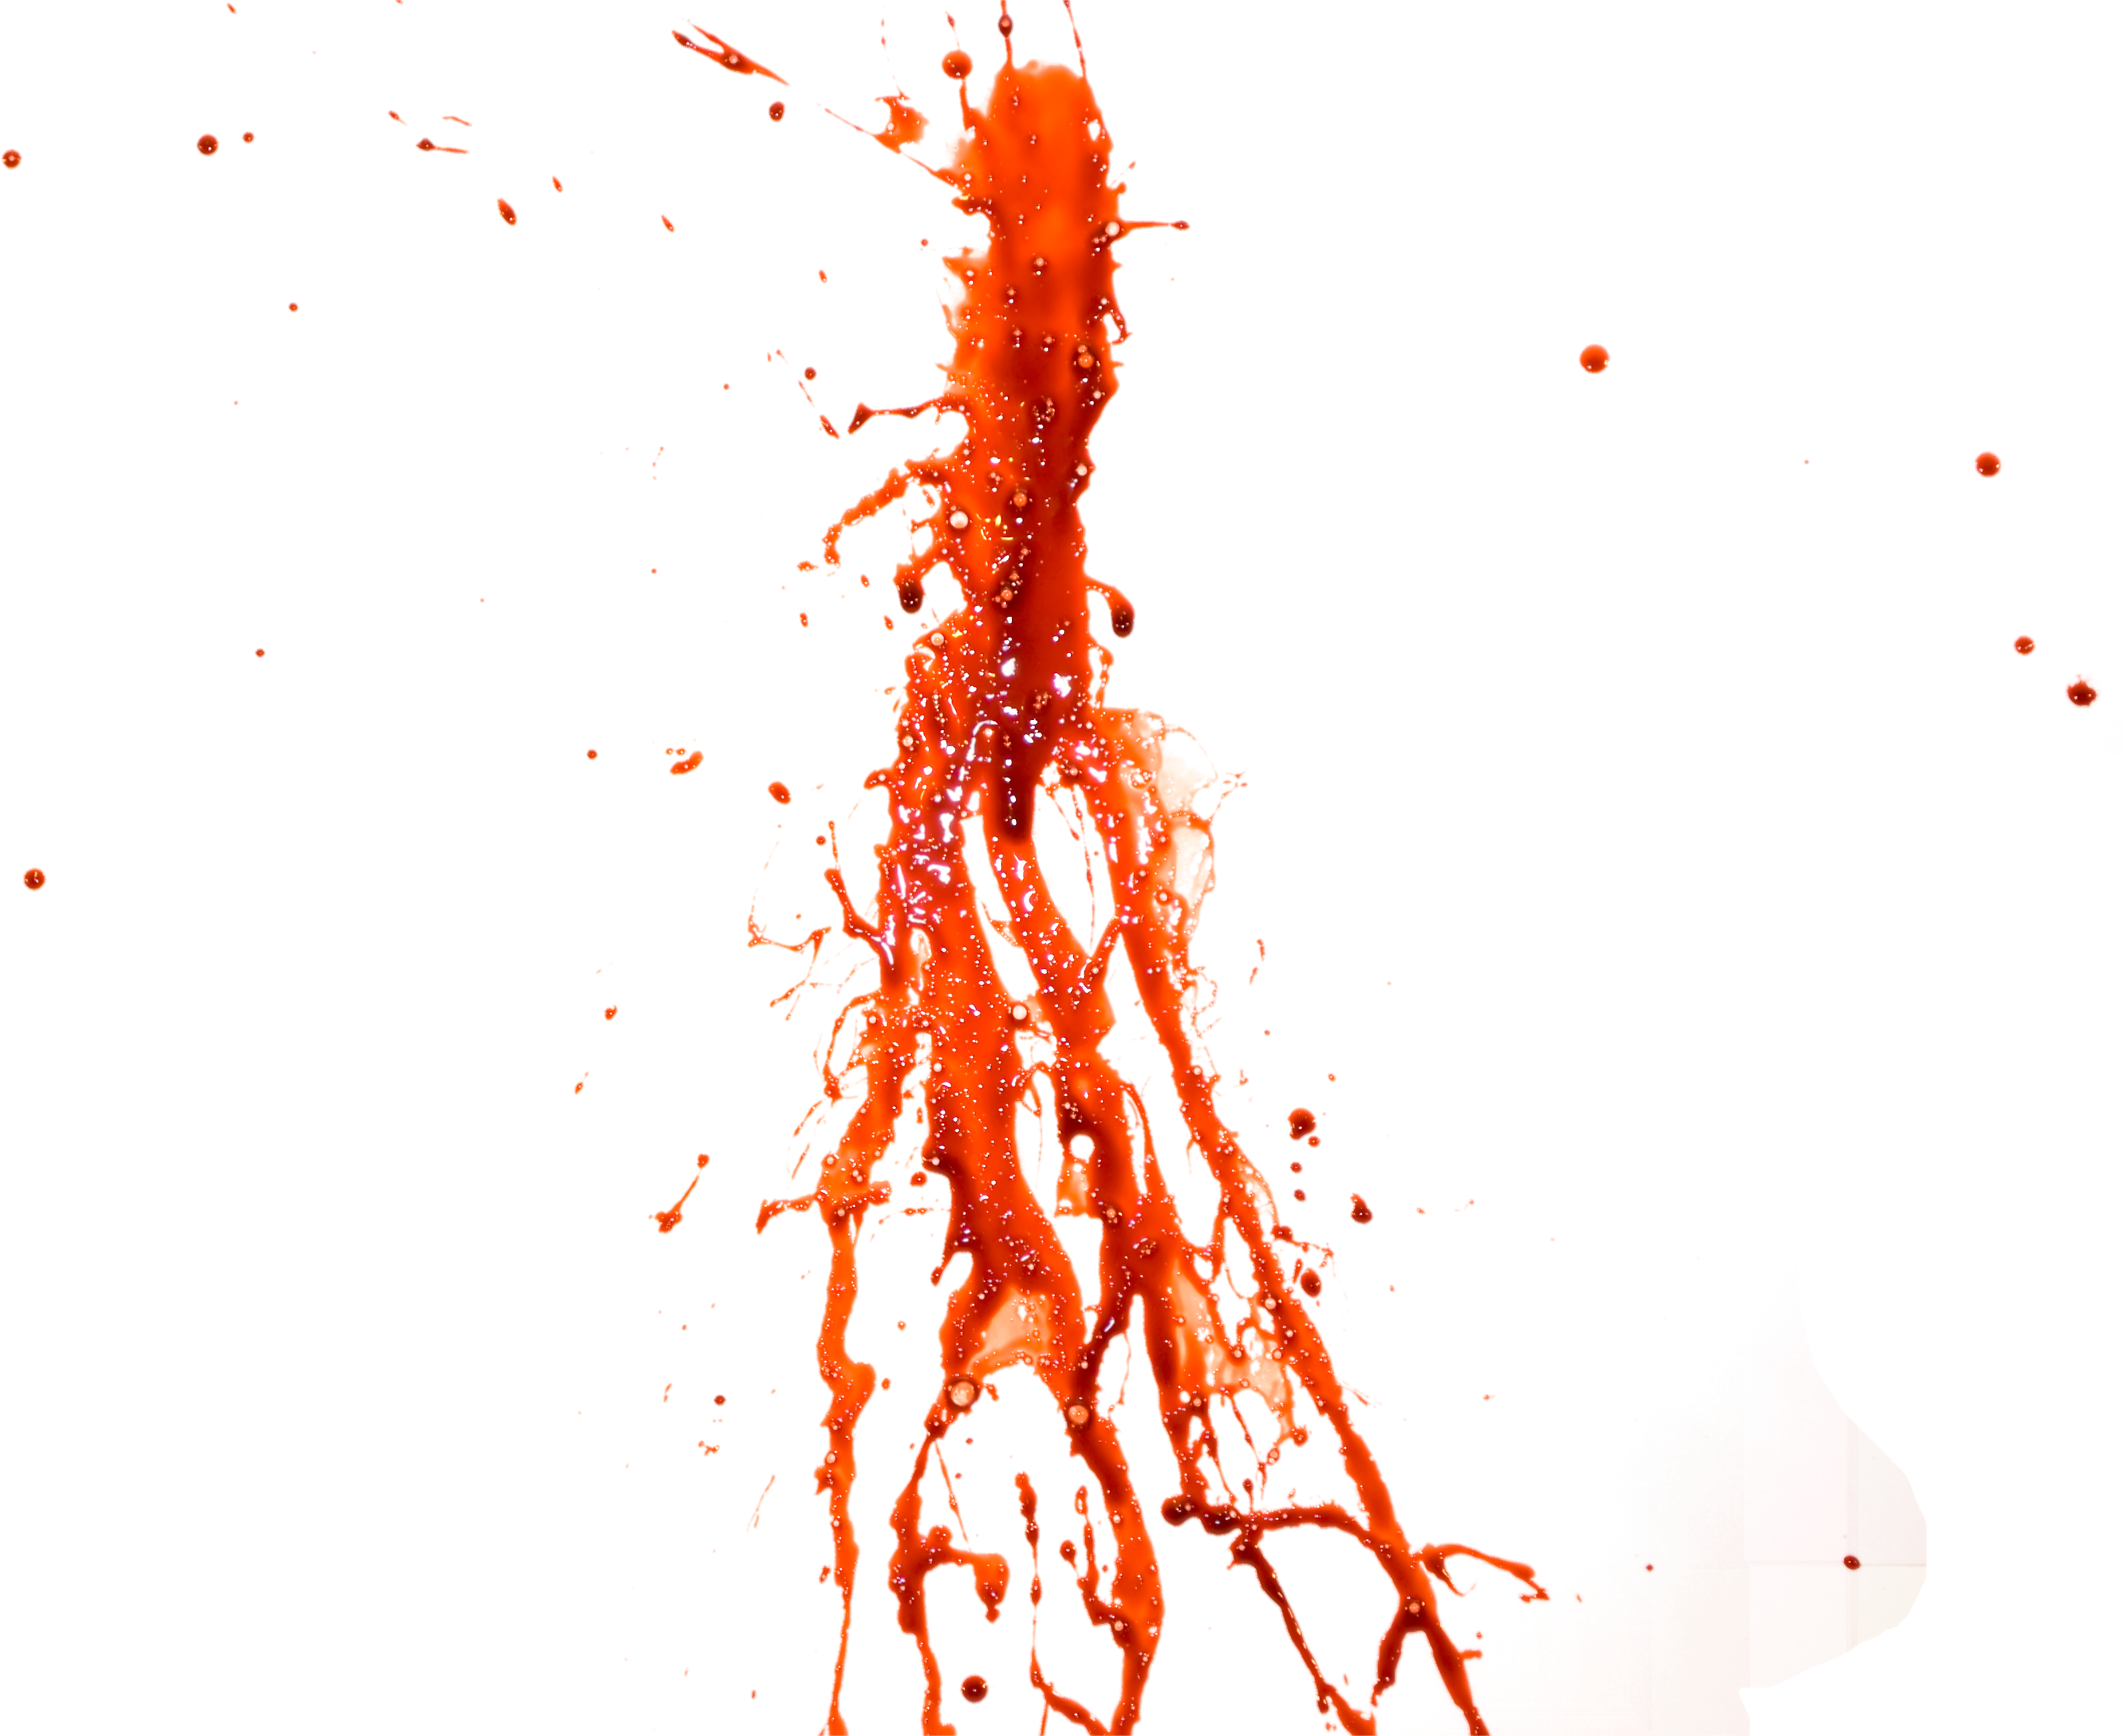 Colorful paint drip png. Blood splatter eighty isolated